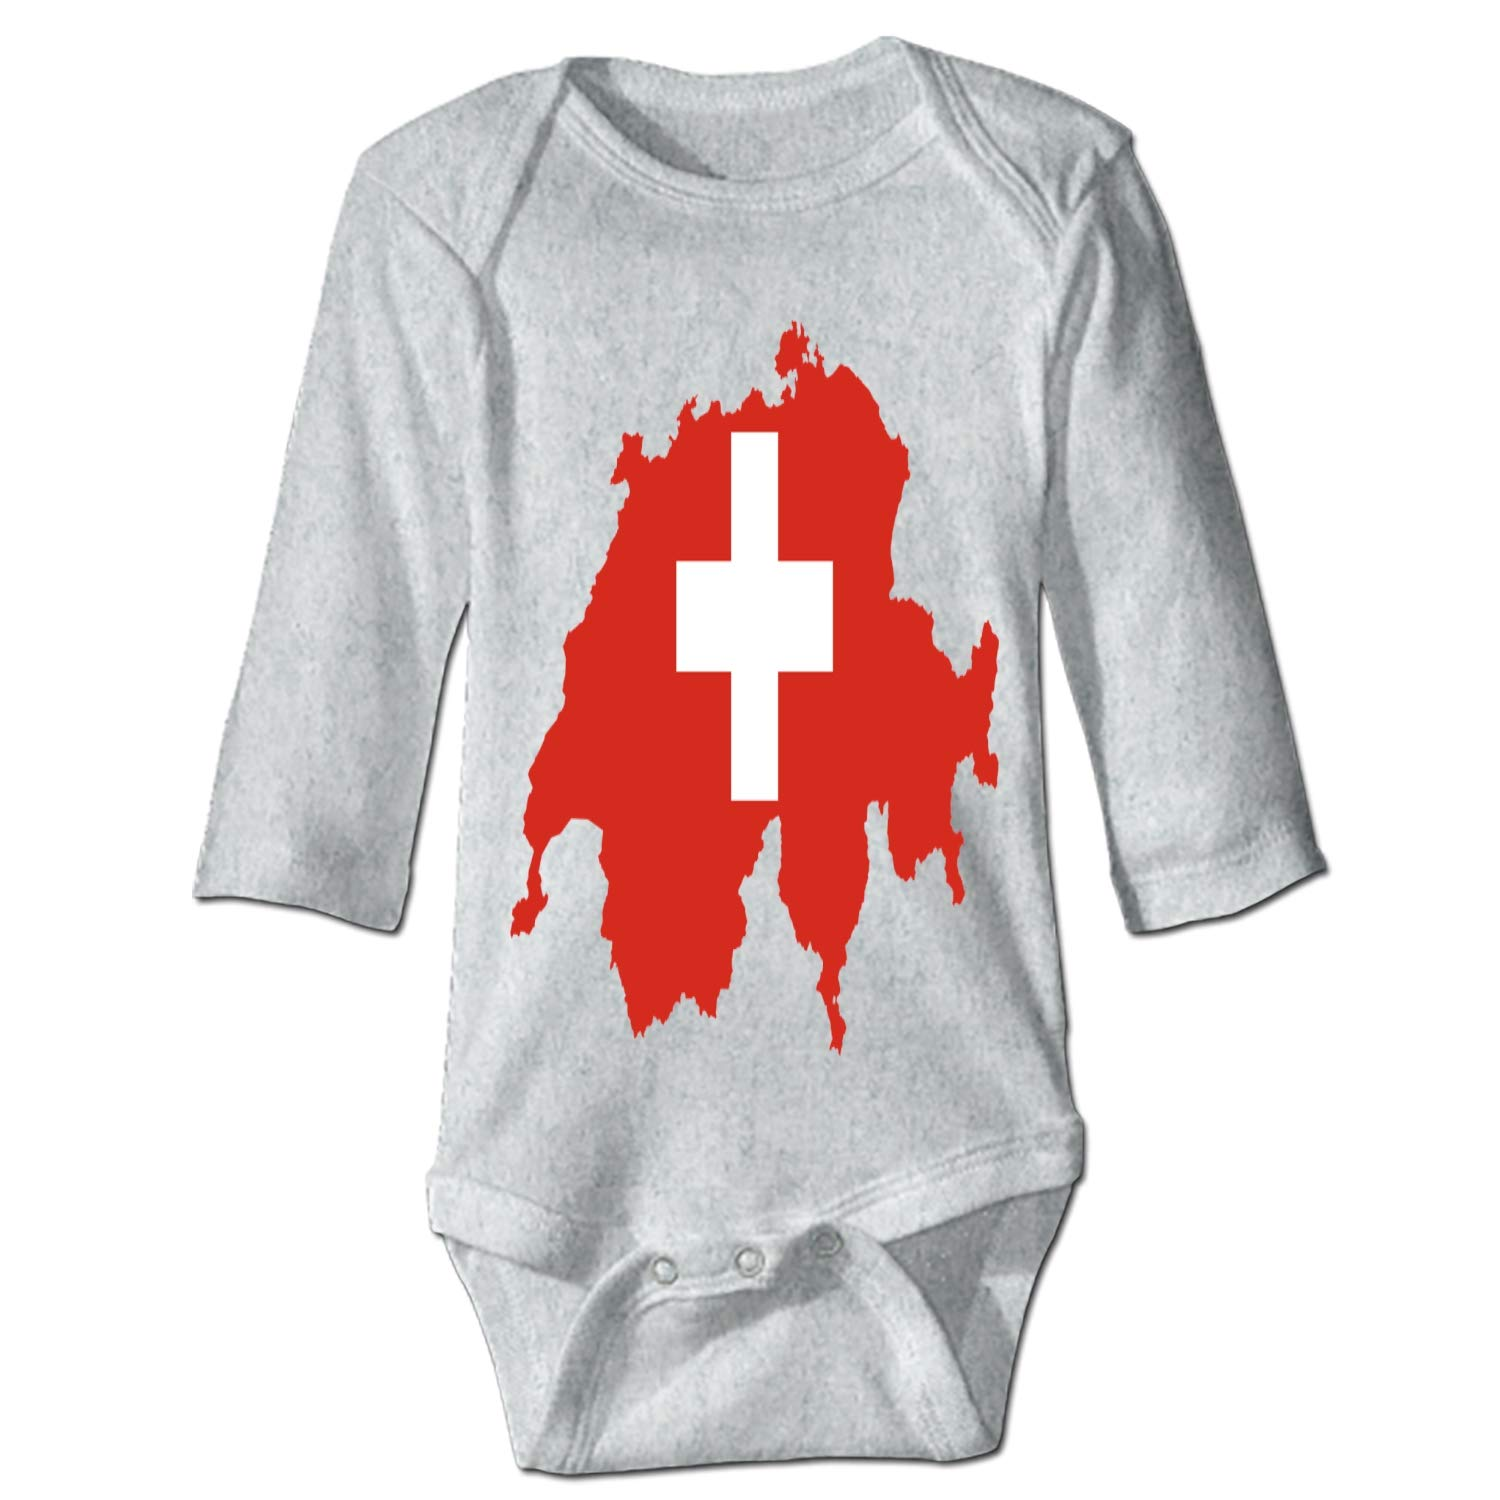 Infant Soft Pajama Creeper Fun Design Switzerland Flag Bodysuits for Babies